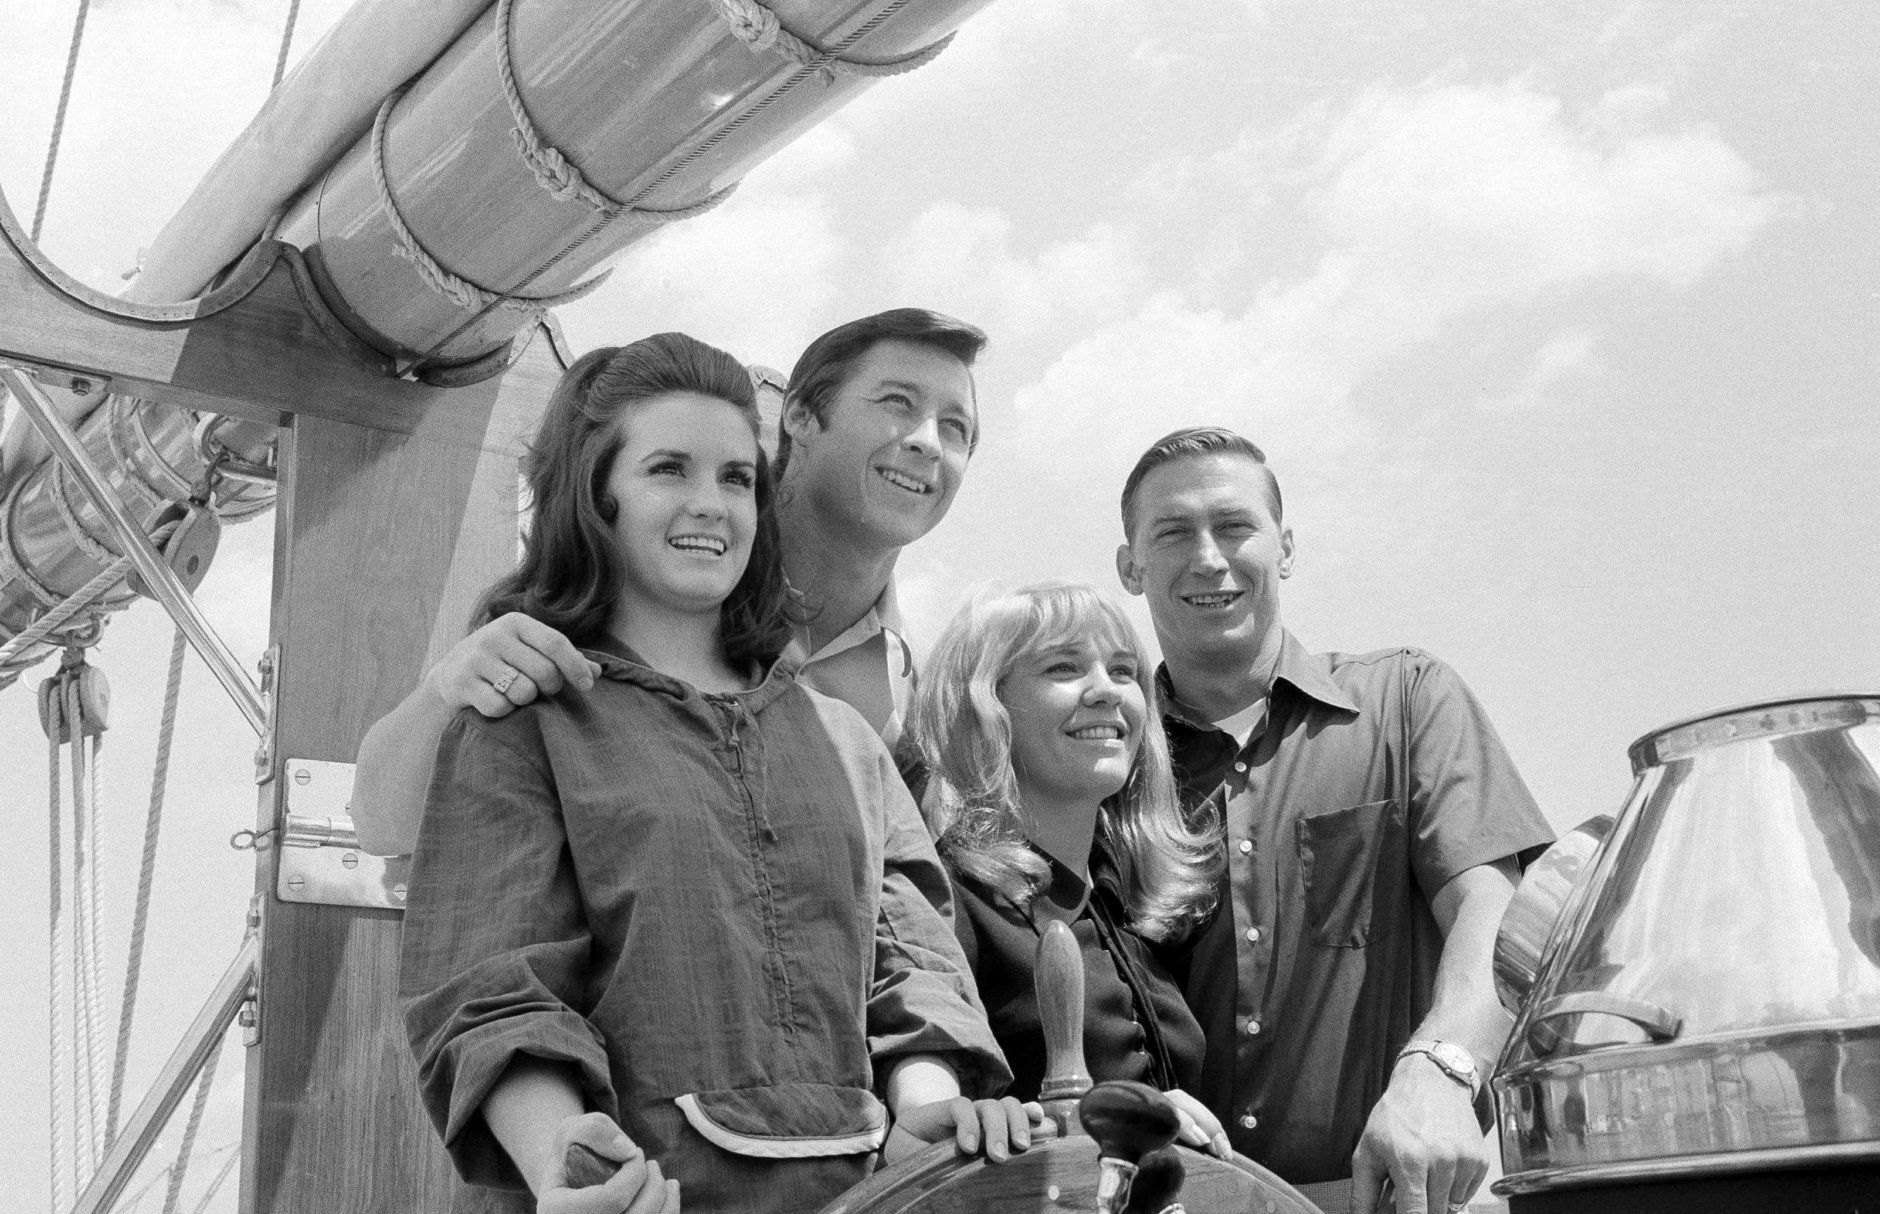 New York Yankees' Bobby Murcer and Mel Stottlemyre, right, pose with their wives Jean Stottlemyre and Kay Murcer  at the wheel of the schooner America during cruise on Long Island Sound, July 6, 1970. The vessel is a replica of the original America, which captured the first Americas Cup in 1851. (AP Photo/Harry Harris)